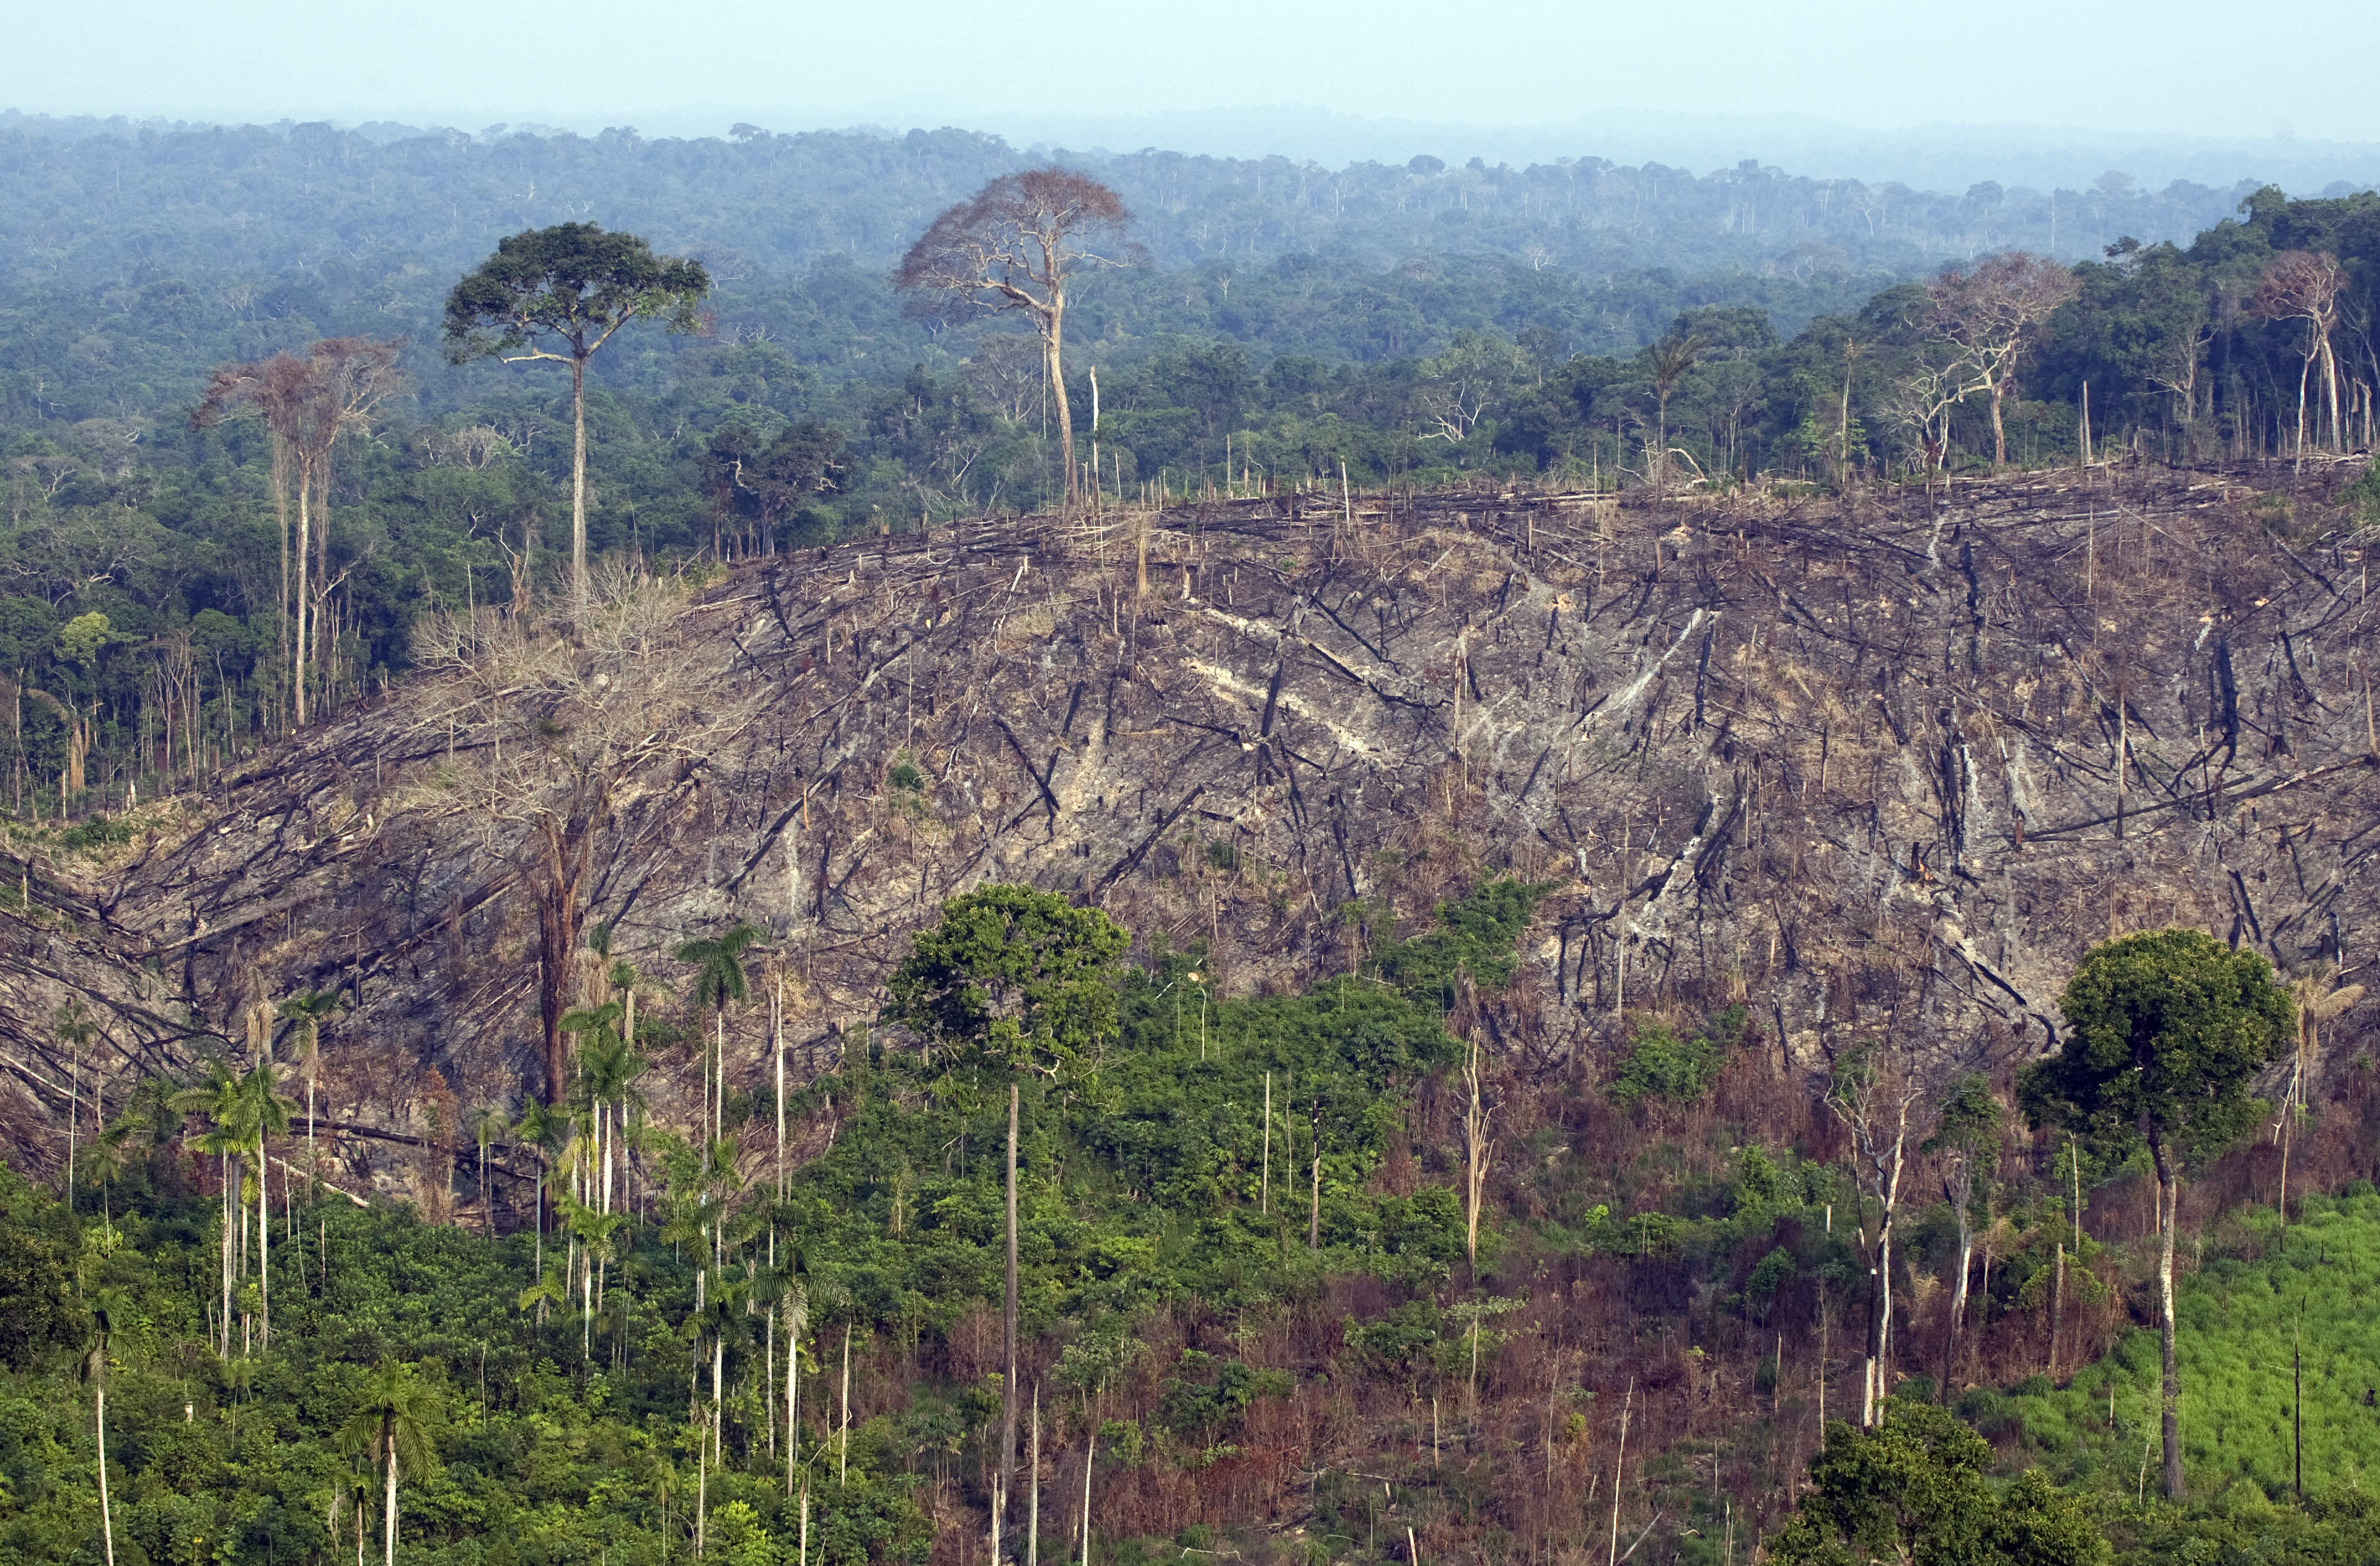 a report on the deforestation in brazil Deforestation continues, the report says, because cleared land is worth more than forested land in the amazon, so there is a strong economic incentive to a bertin group cattle truck on the pa 250, near marabá, brazil deforestation could be greatly reduced and beef production could rise with greater.